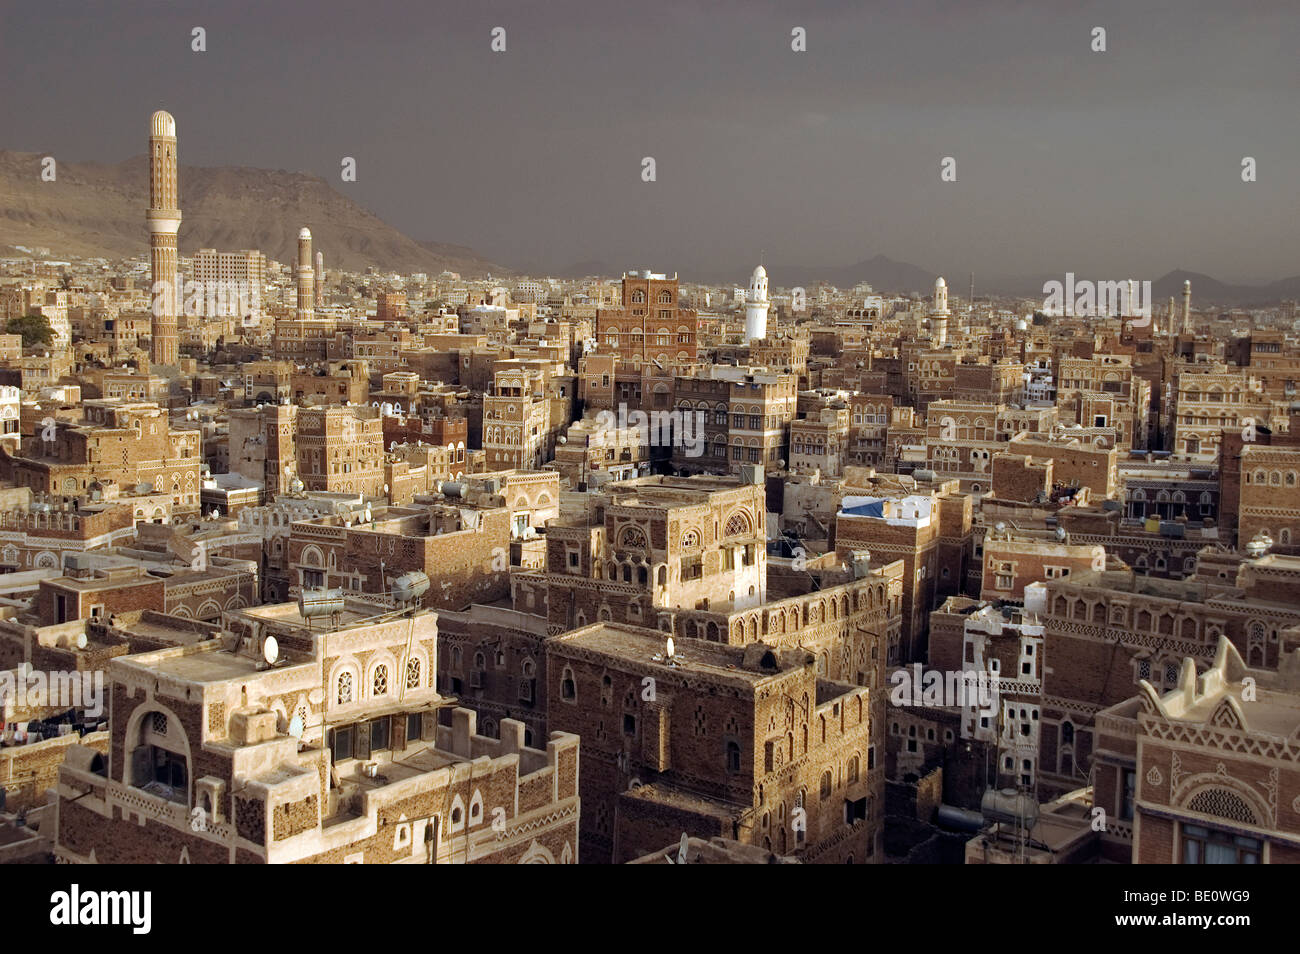 Minarets and traditional tower houses on the skyline of the old city of Sana'a, Yemen. - Stock Image